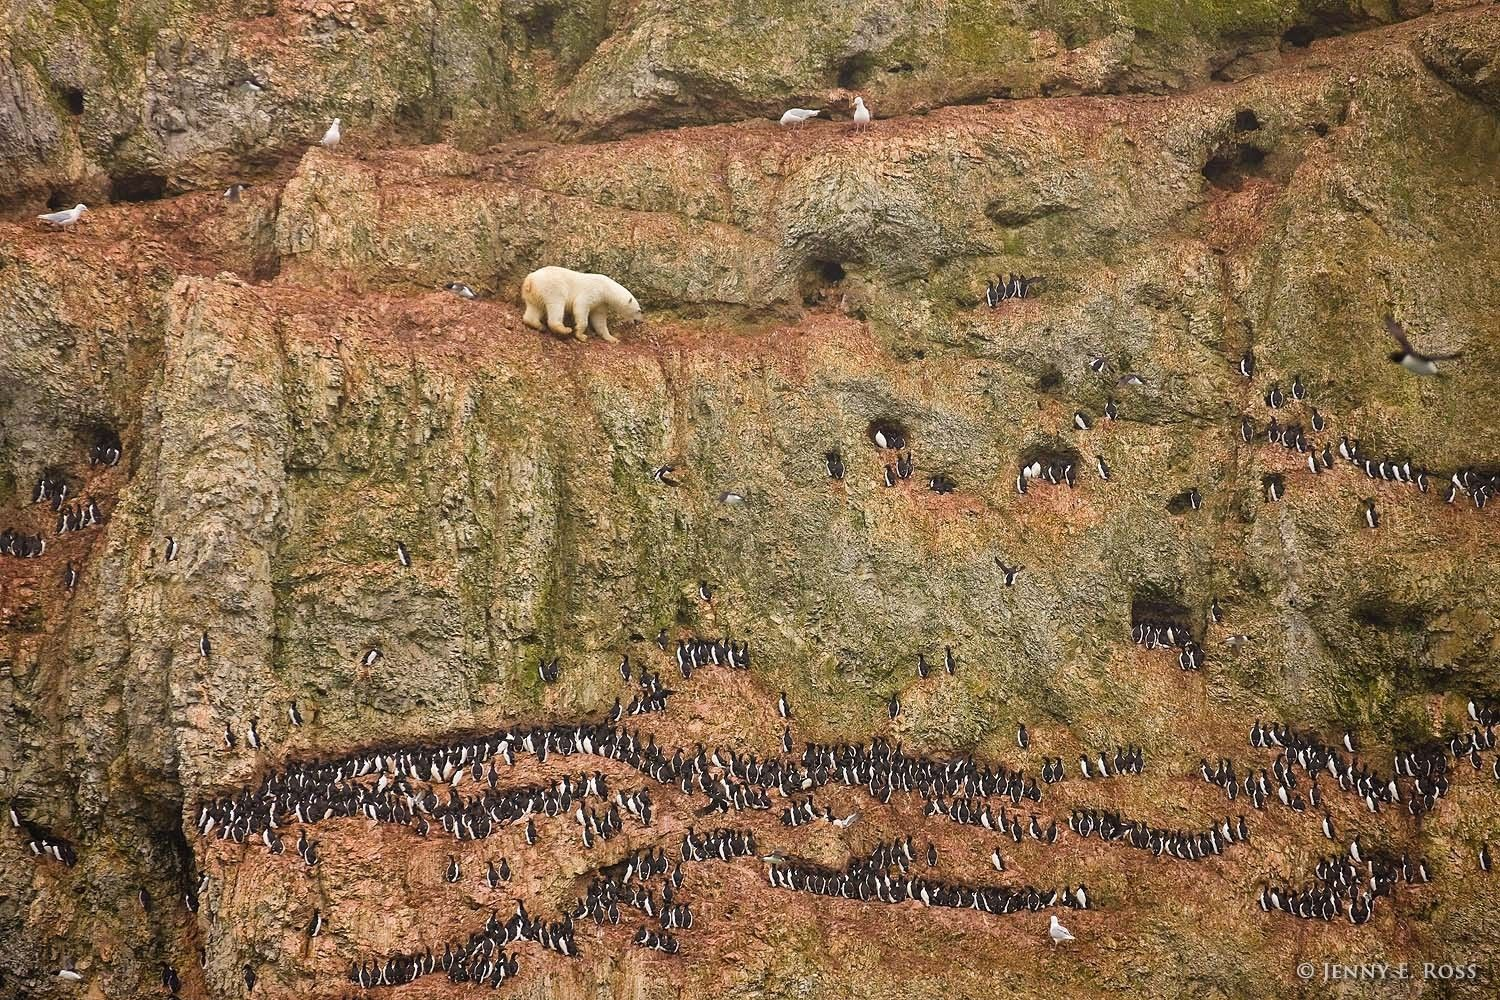 A subadult male polar bear (Ursus maritimus) climbs precariously on the face of a cliff above the ocean in the Russian Arctic, attempting unsuccessfully to feed on seabird eggs. The hungry bear was stranded on land due to a lack of sea ice.